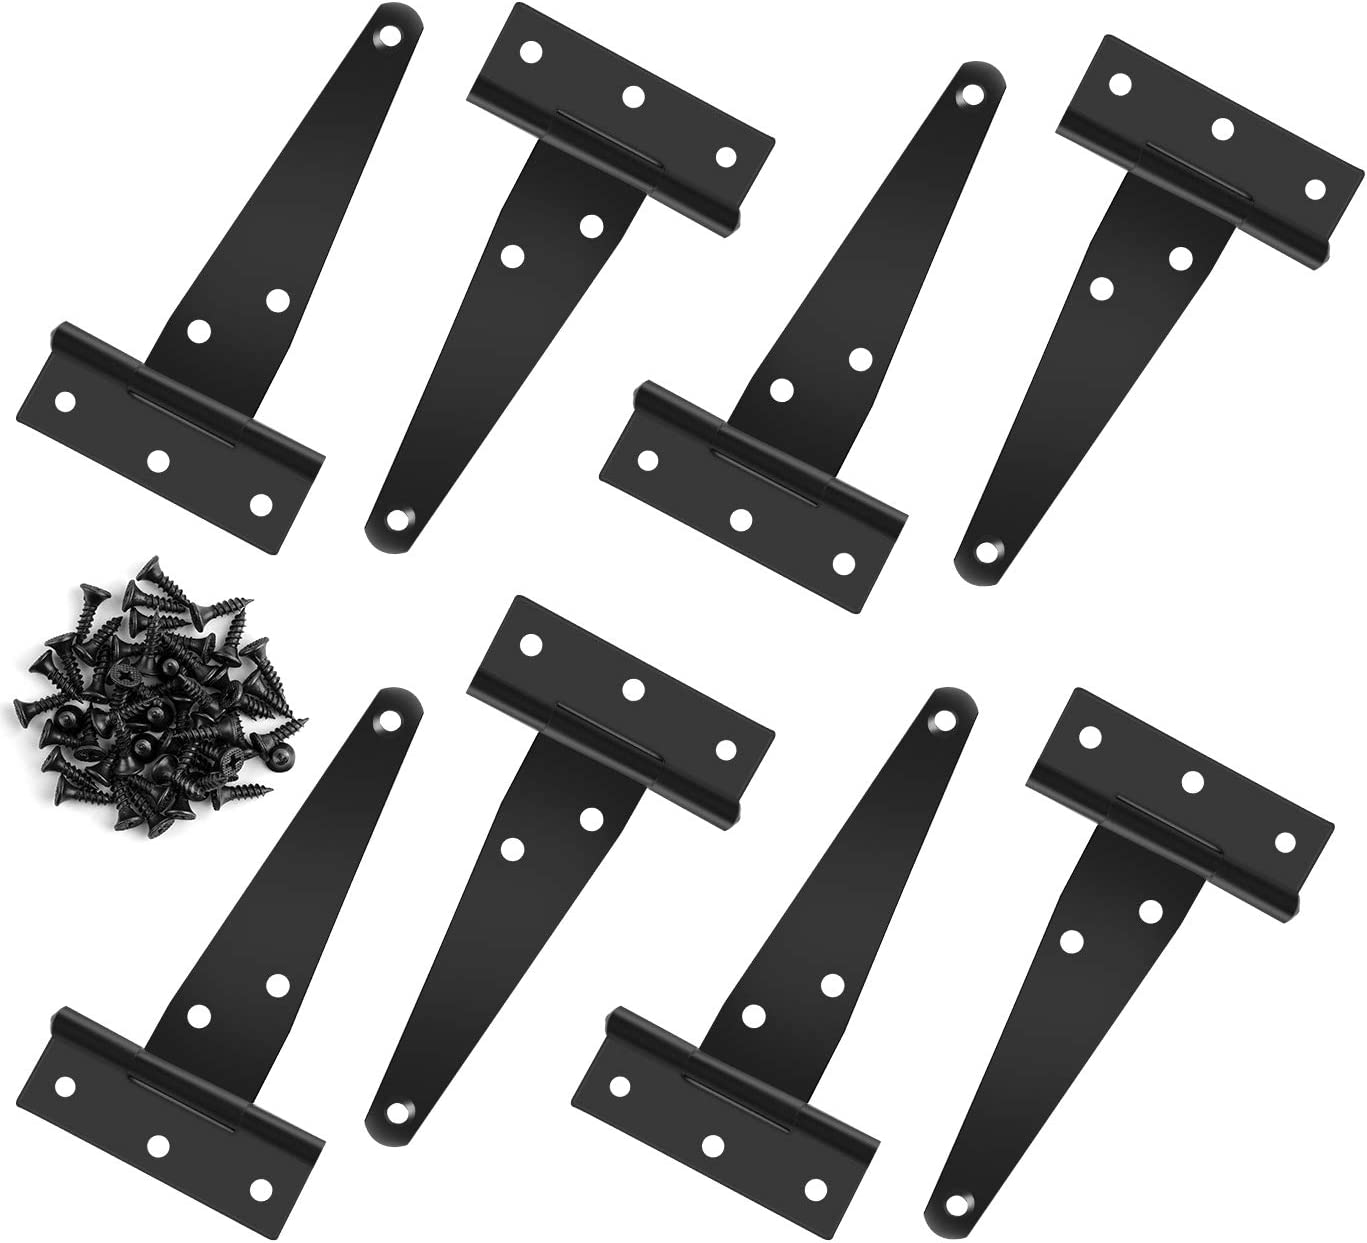 QUACOWW 8 Pieces 4 Inch T-Hinge Black Metal T Strap Hinges Rustproof Gate Door Hinges with 48 Pieces Mounting Screws for Windows Sheds and Barn Gates Fence